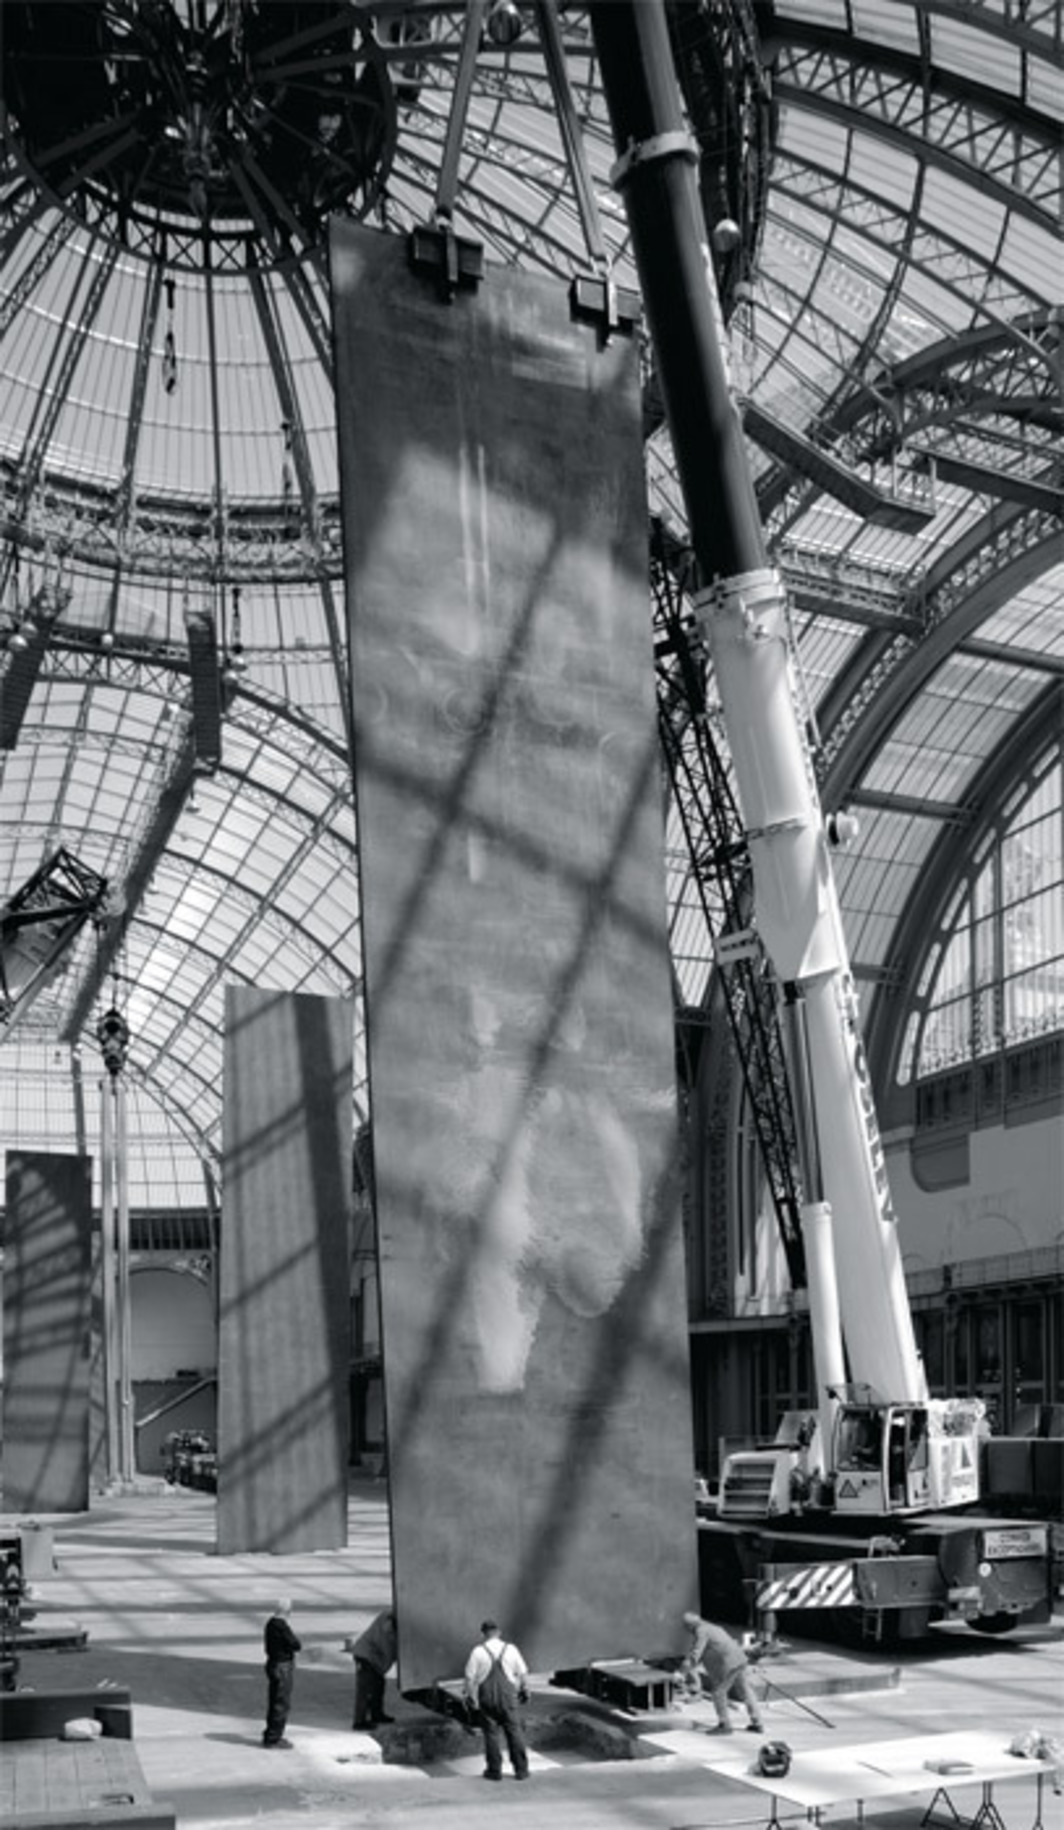 Richard Serra's Promenade, 2008, being installed in the Grand Palais, Paris. Photo: Lorenz Kienzle.